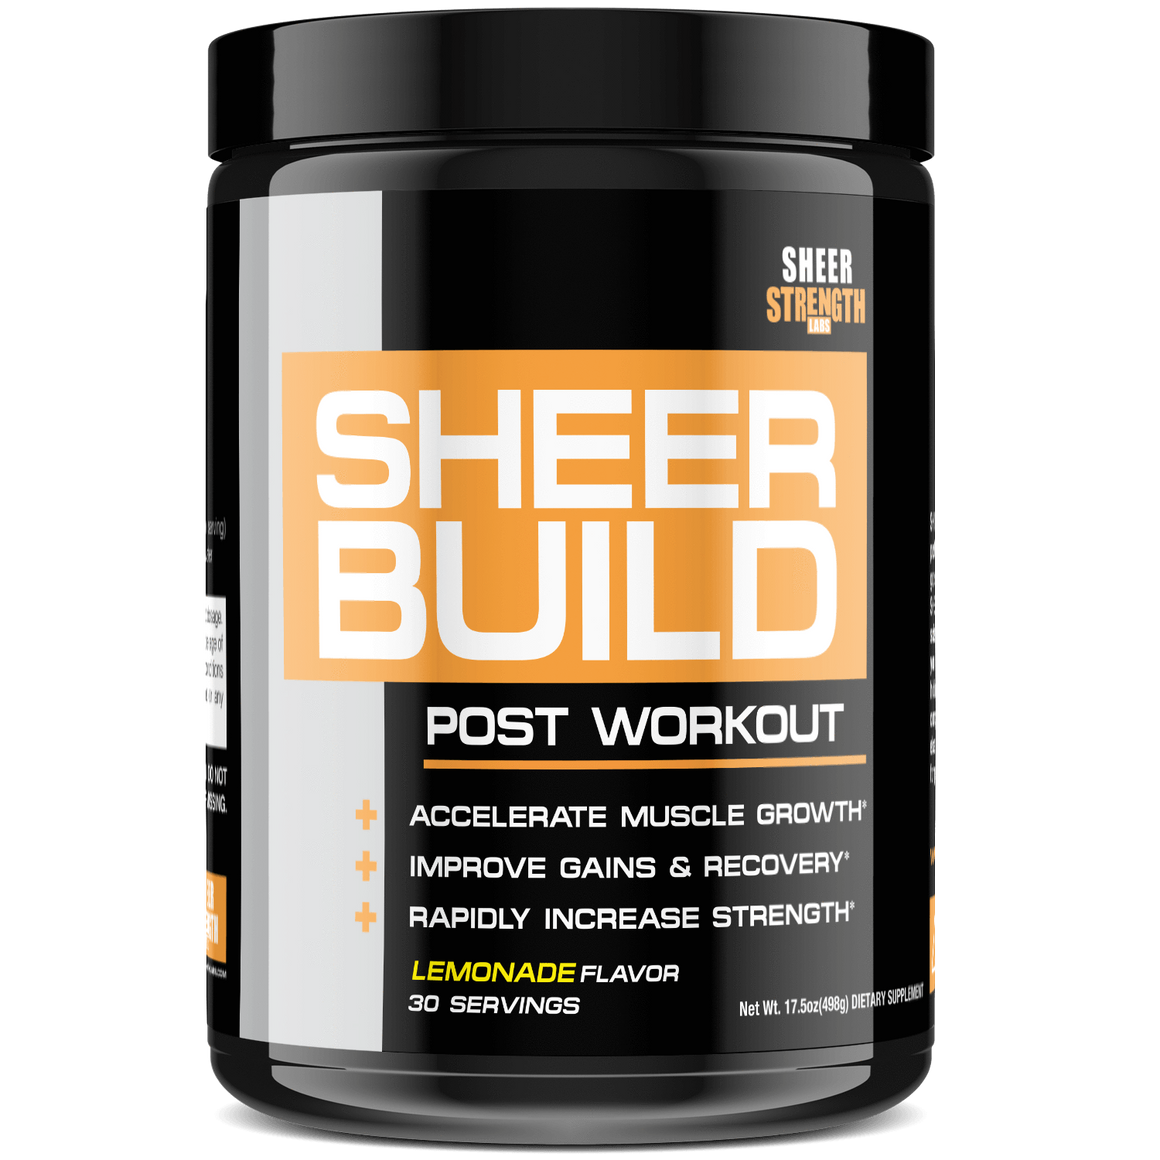 Sheer Strength Labs Muscle Builder Sheer Build Post Workout Supplement (Lemonade)